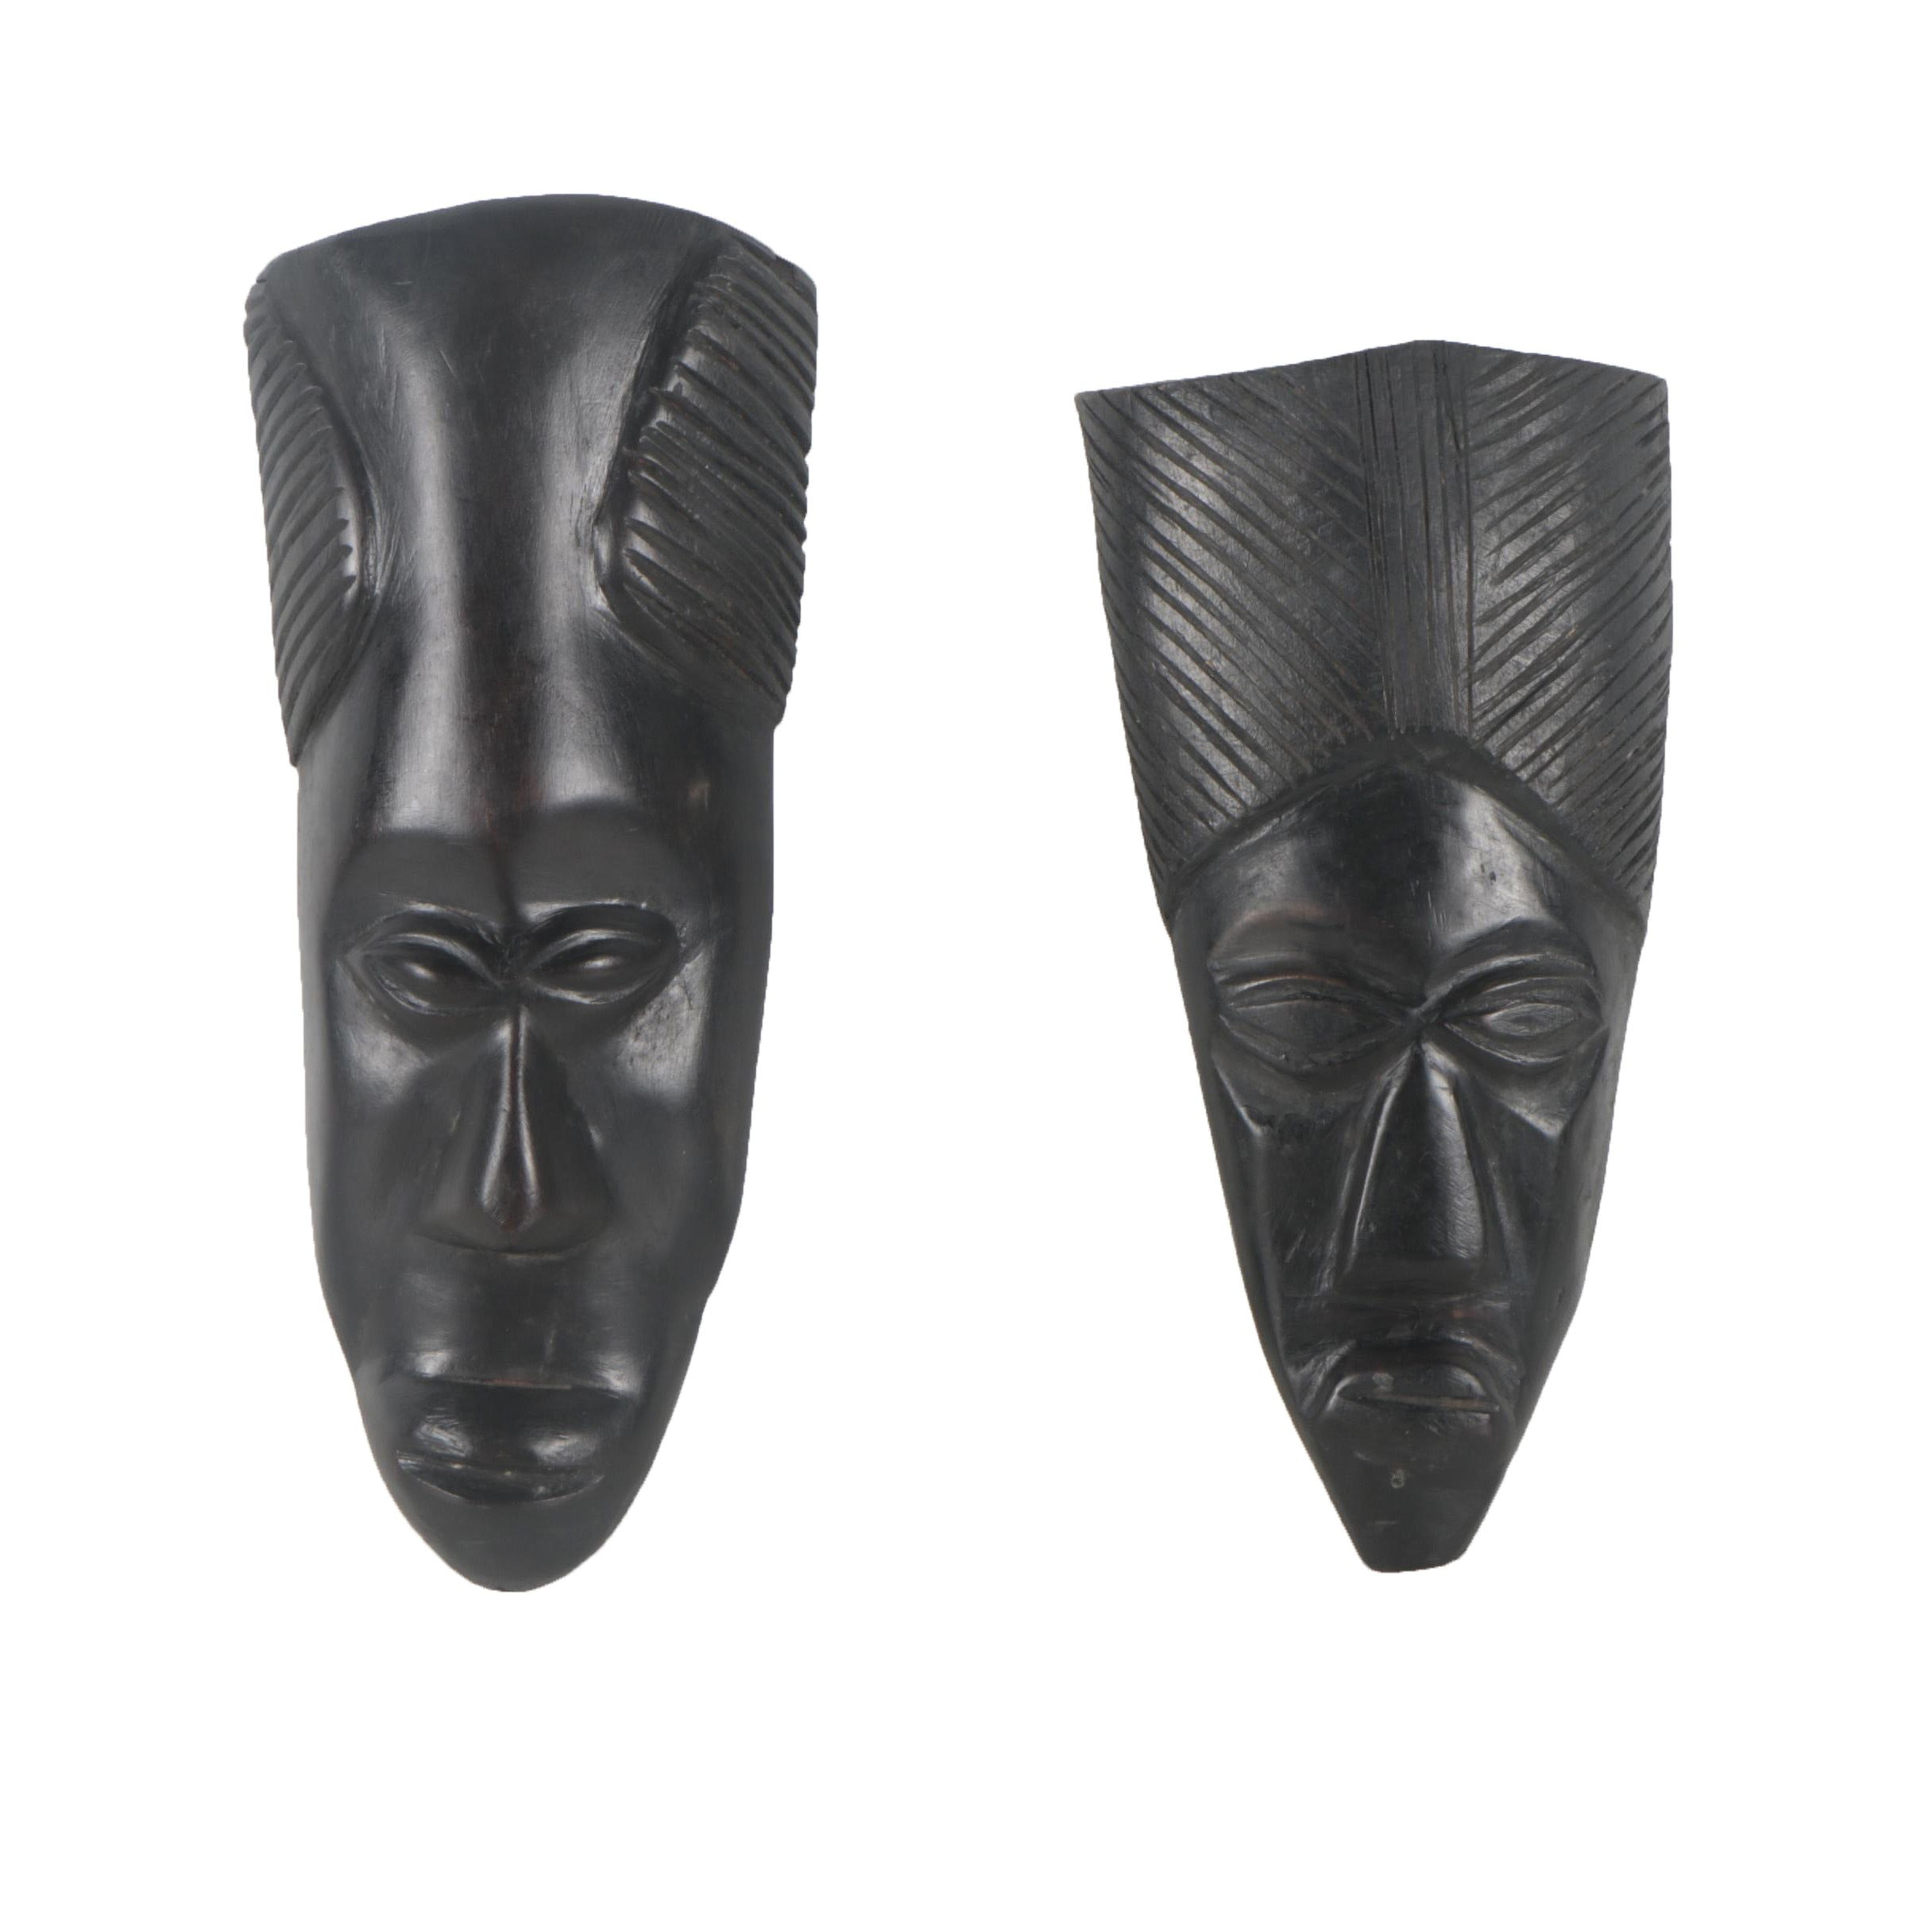 East African Style Carved Wood Wall Masks